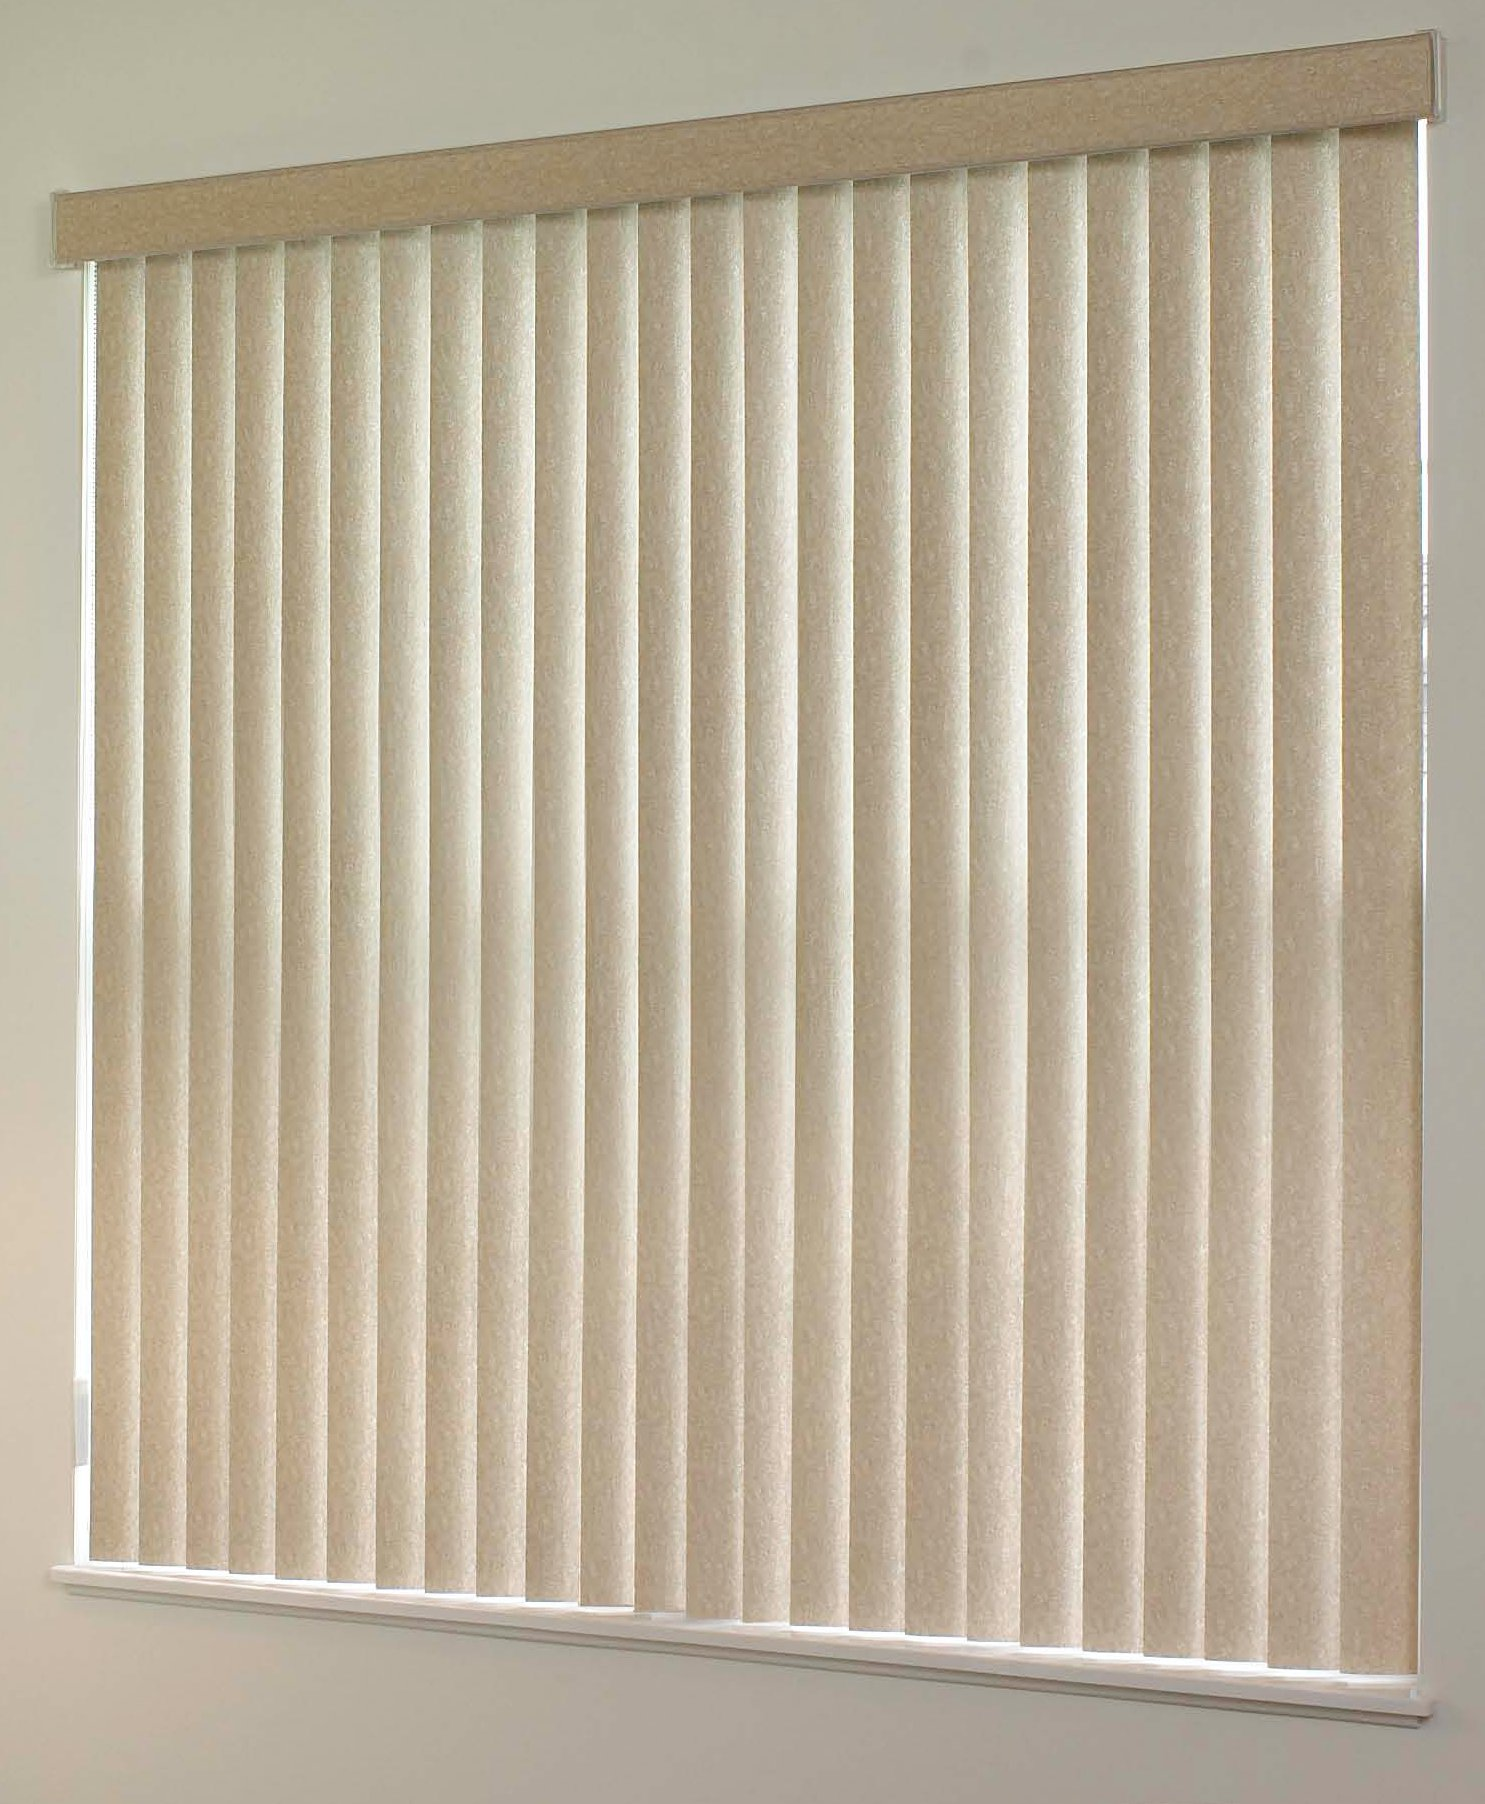 vinyl window shades remote control designer 12 commercial window coverings roller shades fire